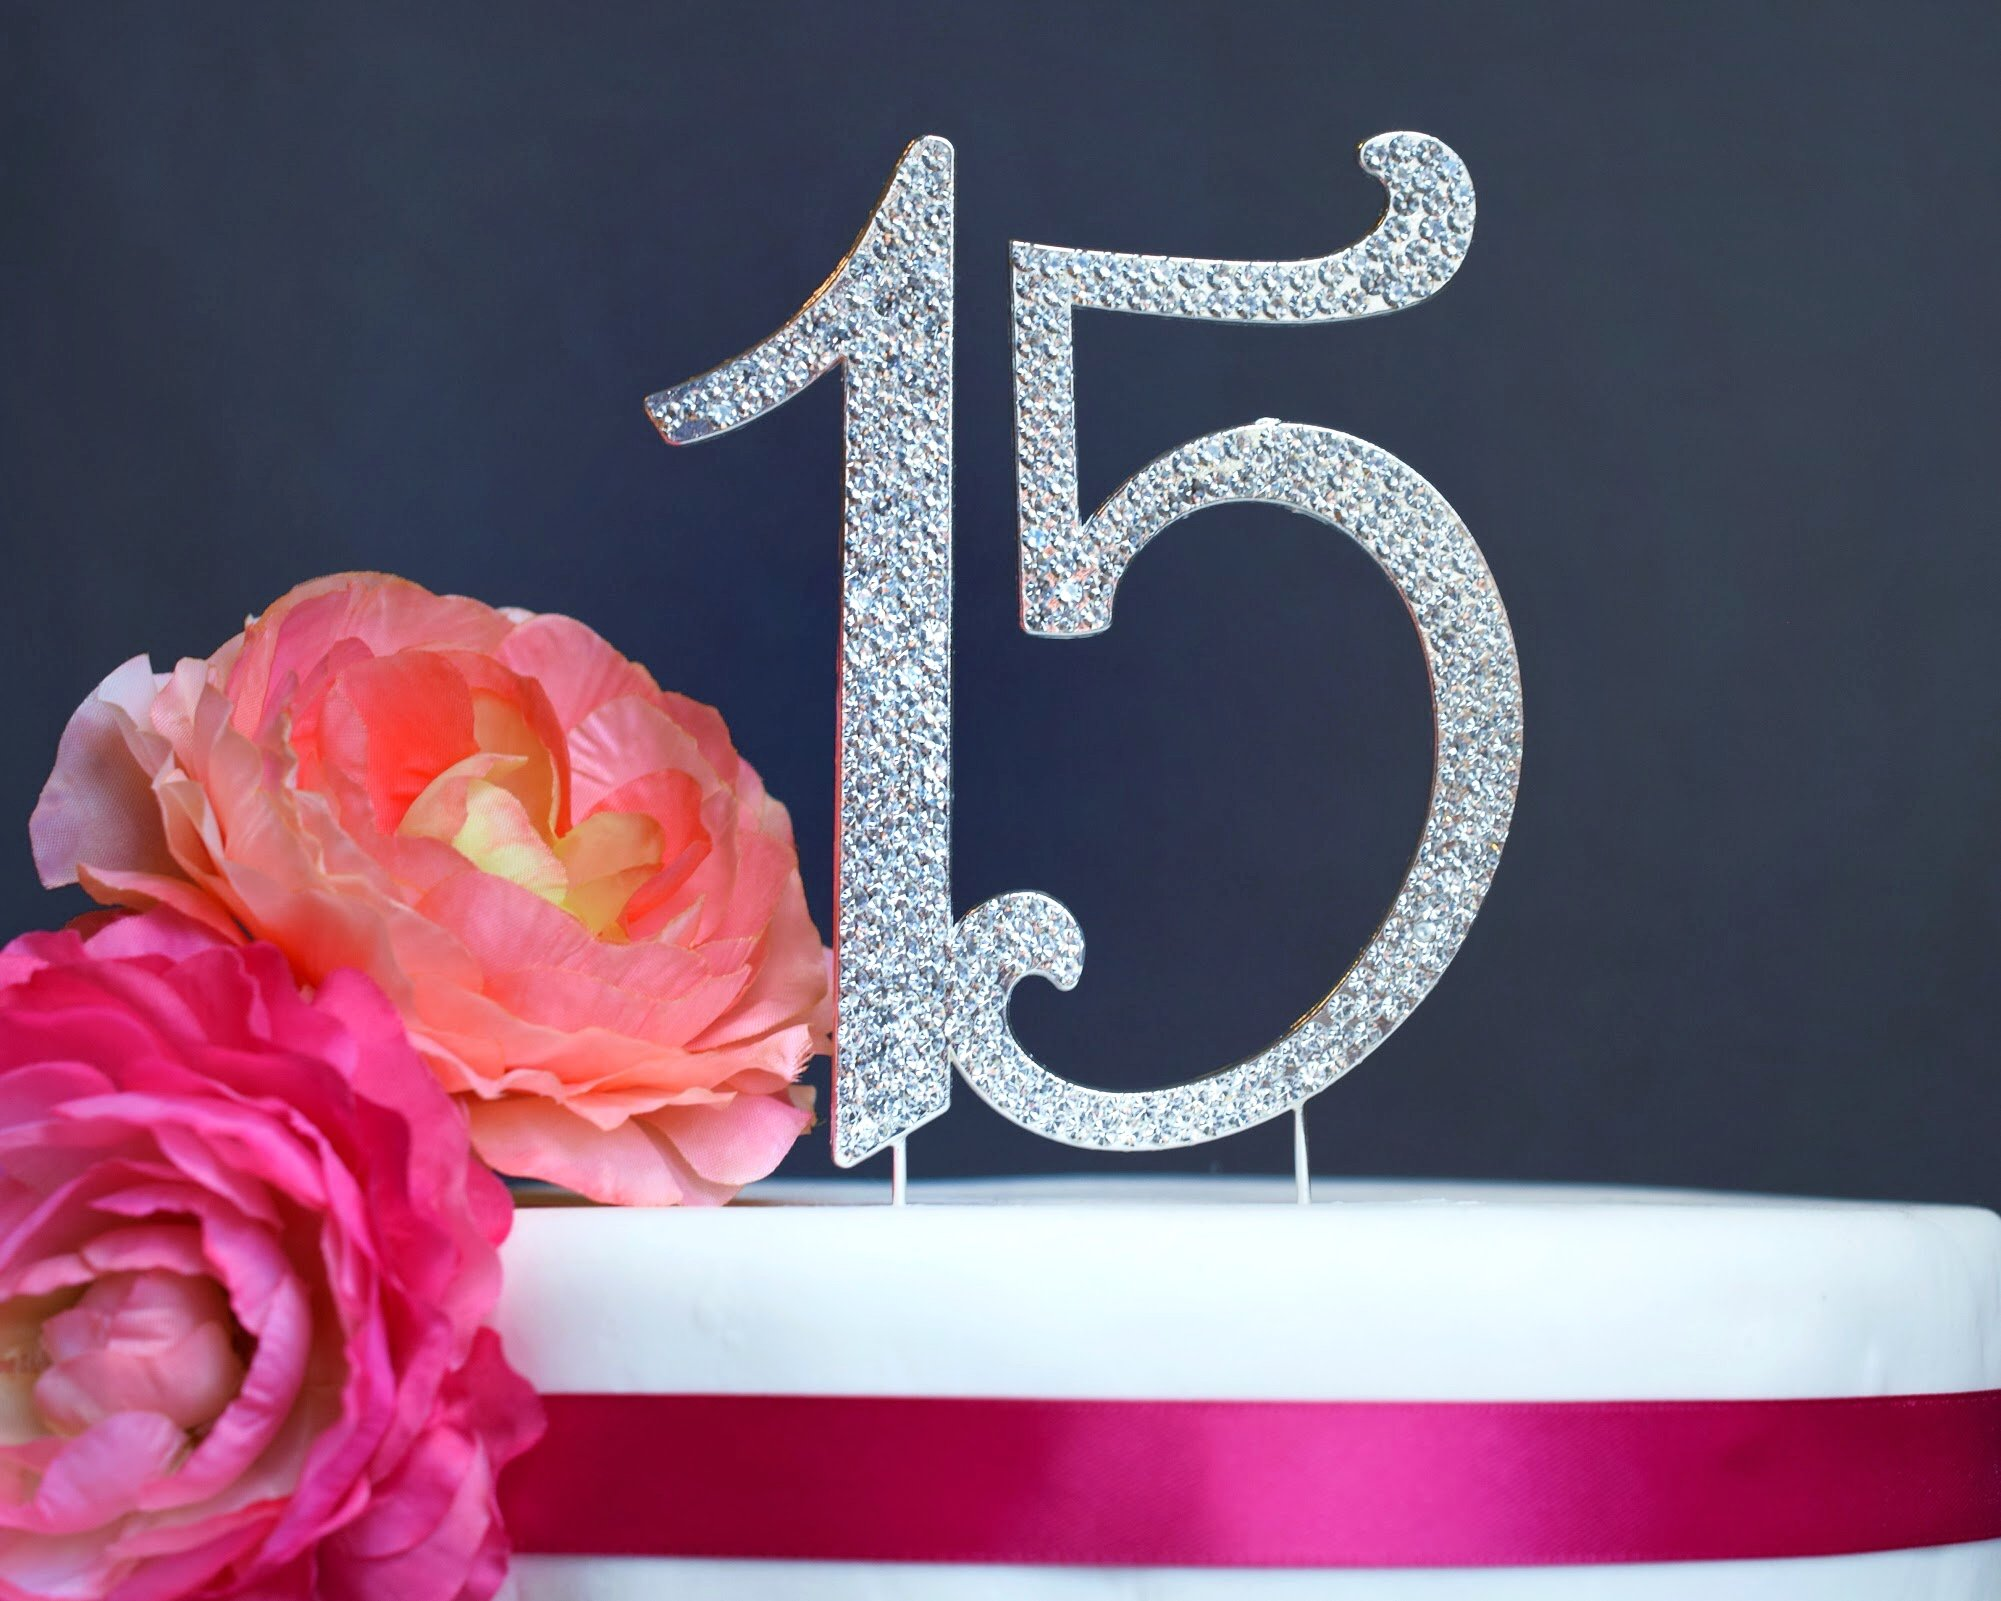 15 Quinceañera Cake Topper | Premium Sparkly Crystal Rhinestones | 15th Birthday or Anniversary Party Decoration Ideas | Quality Metal Alloy | Perfect Keepsake (15 Silver)